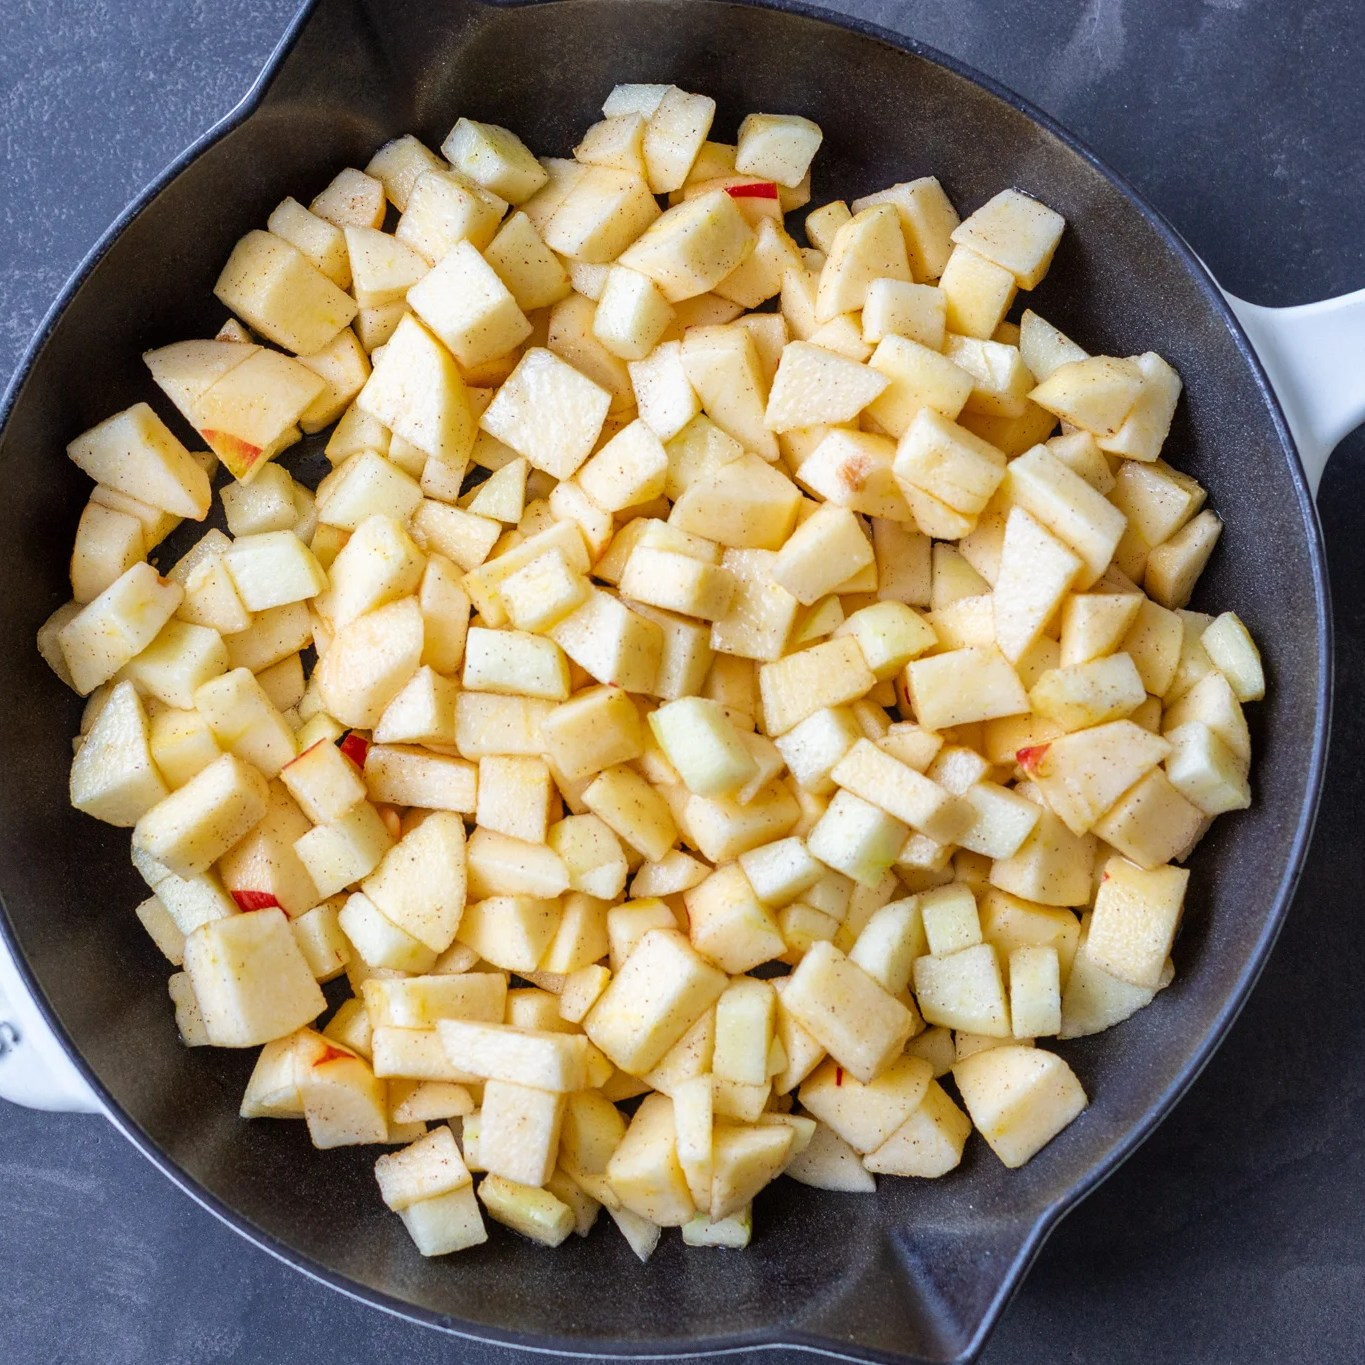 apples pieces in a pan